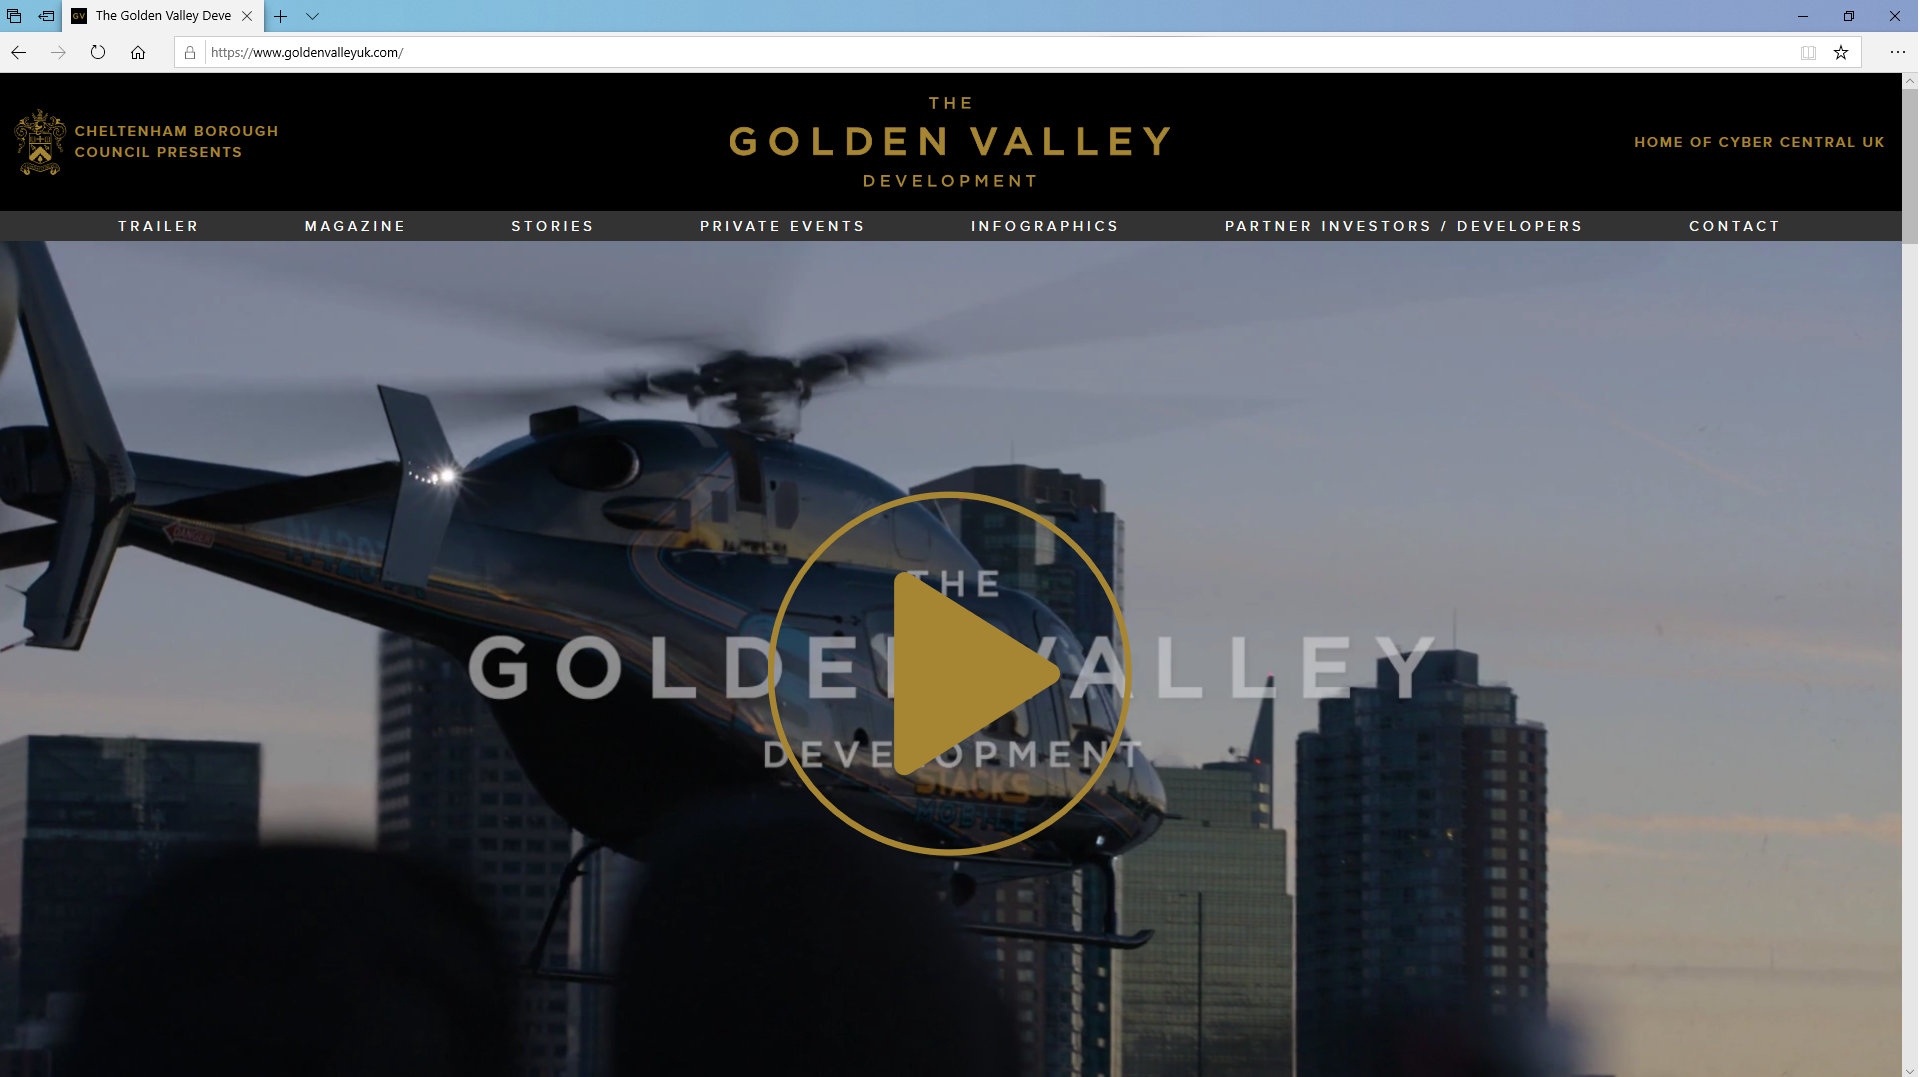 Golden Valley Development Website/Trailer by Tang Marketing